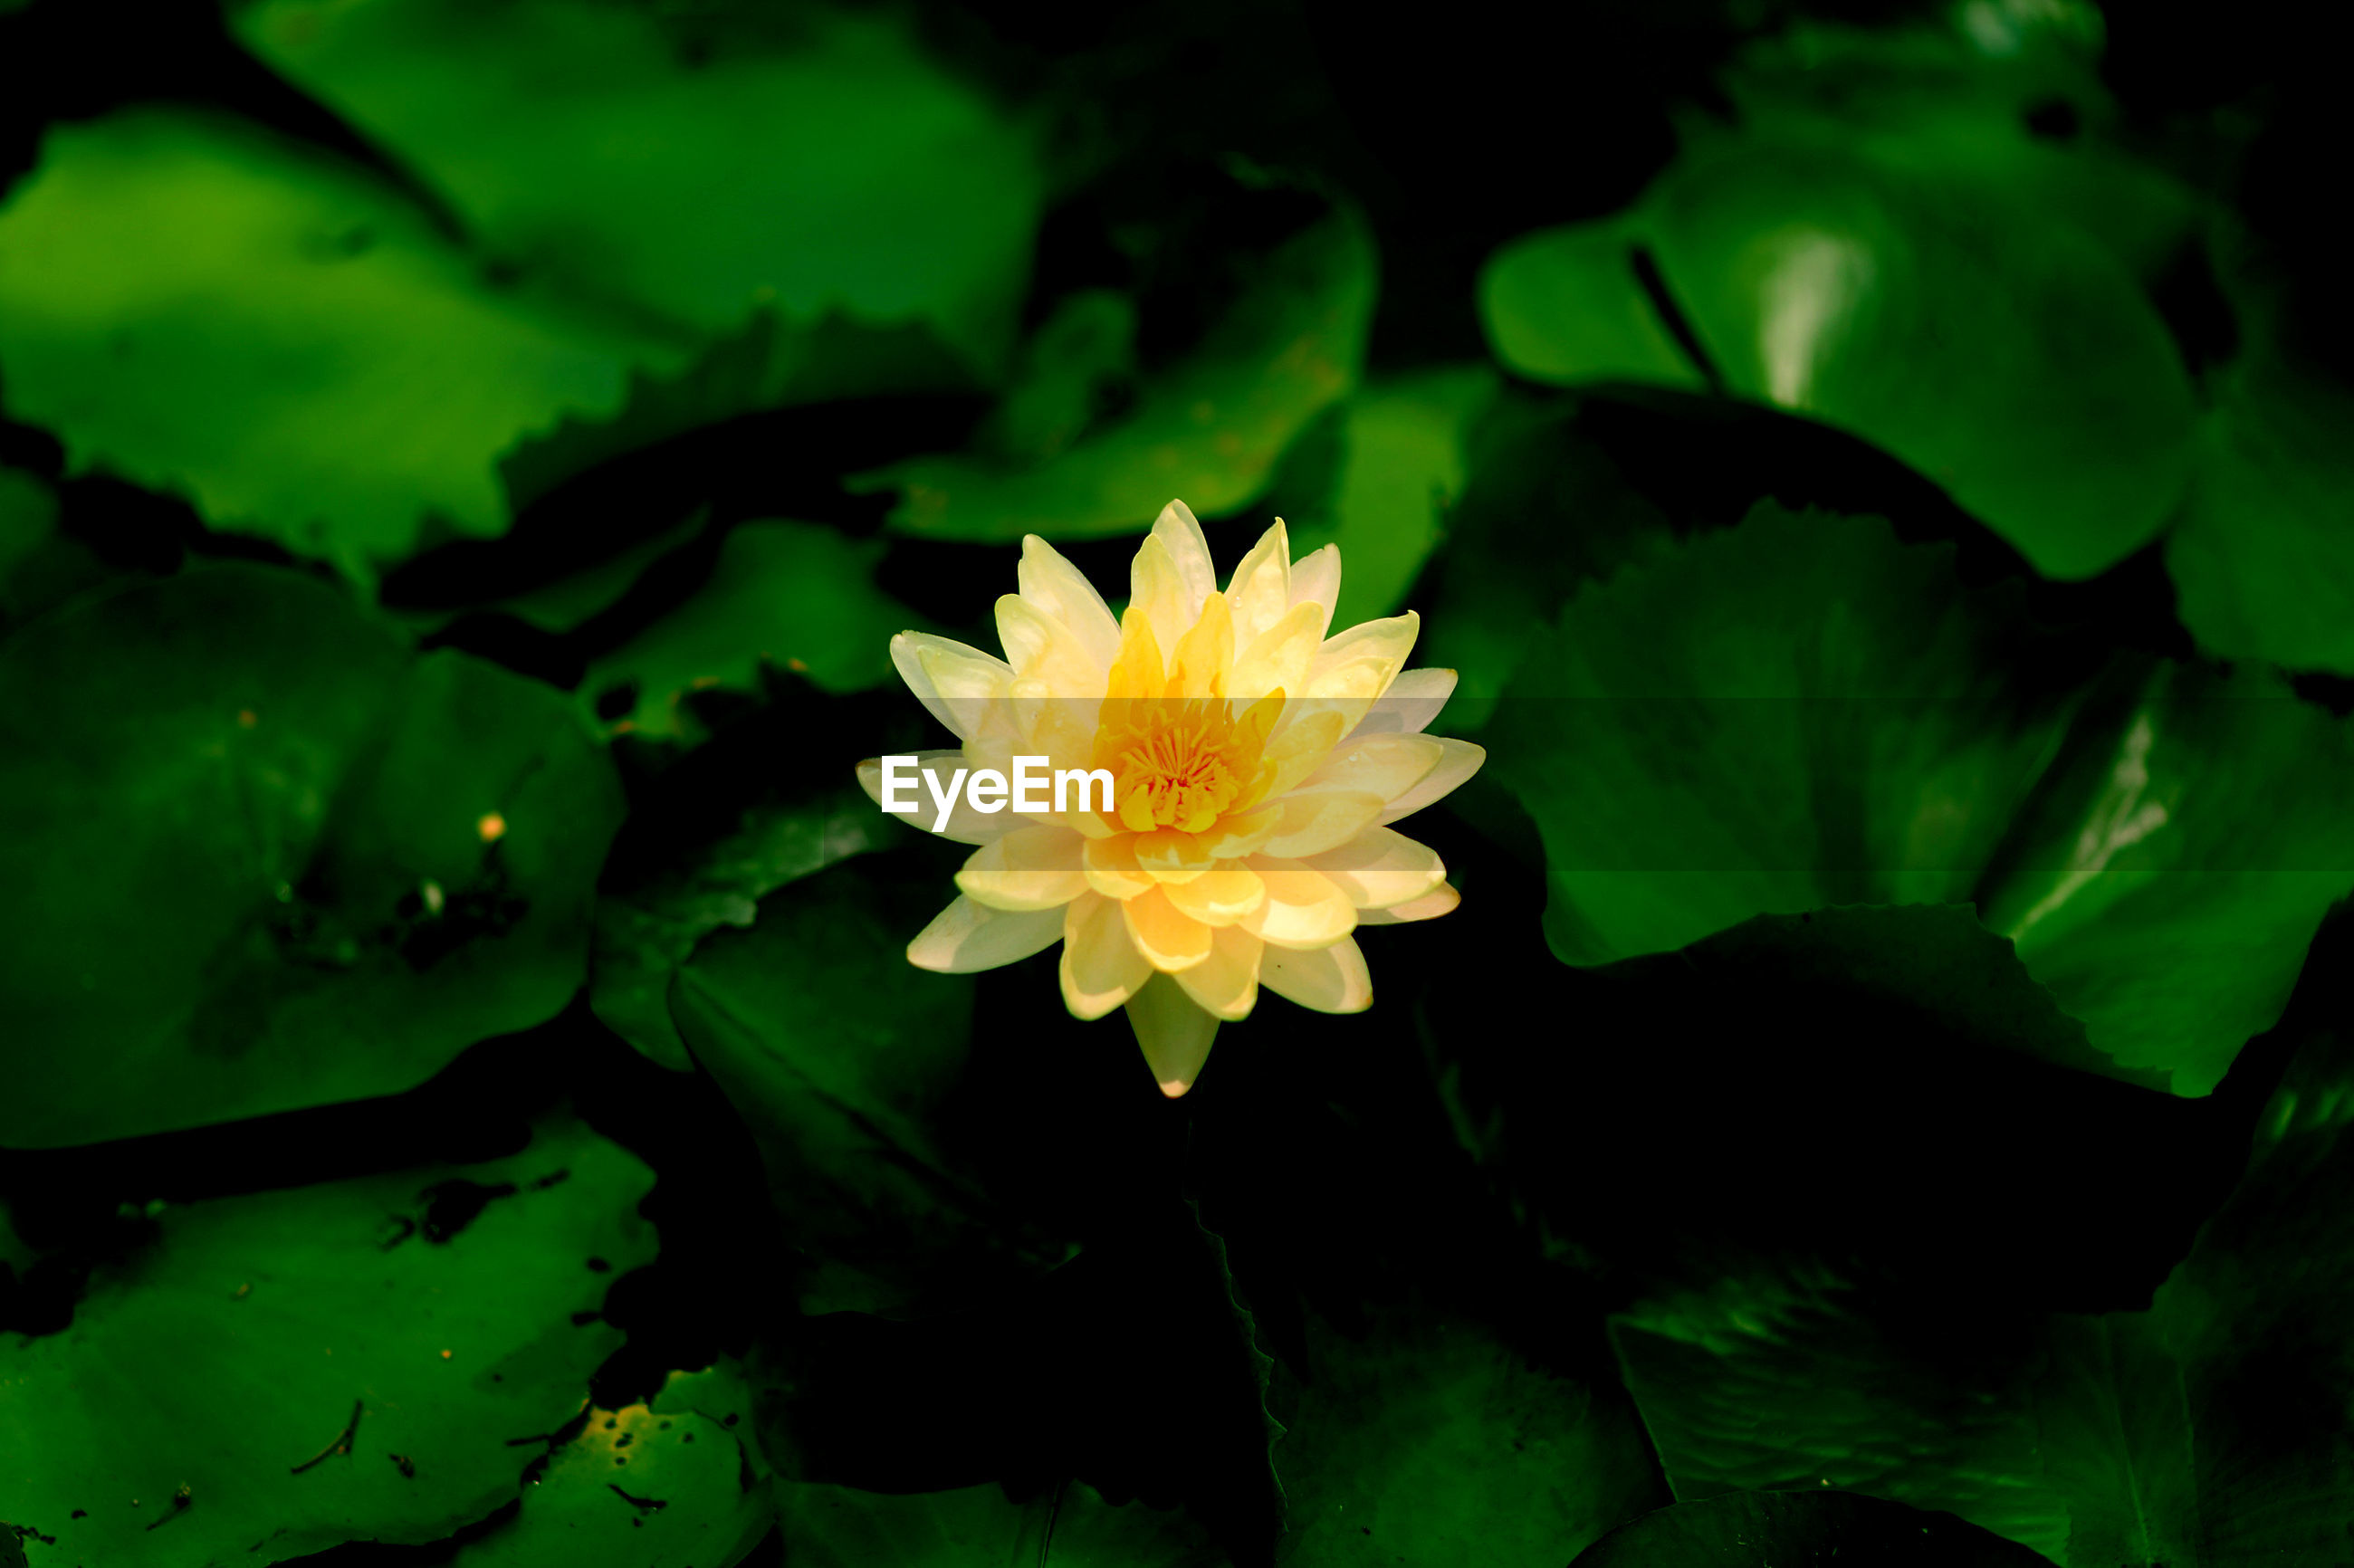 Close-up of yellow water lily amidst leaves in pond